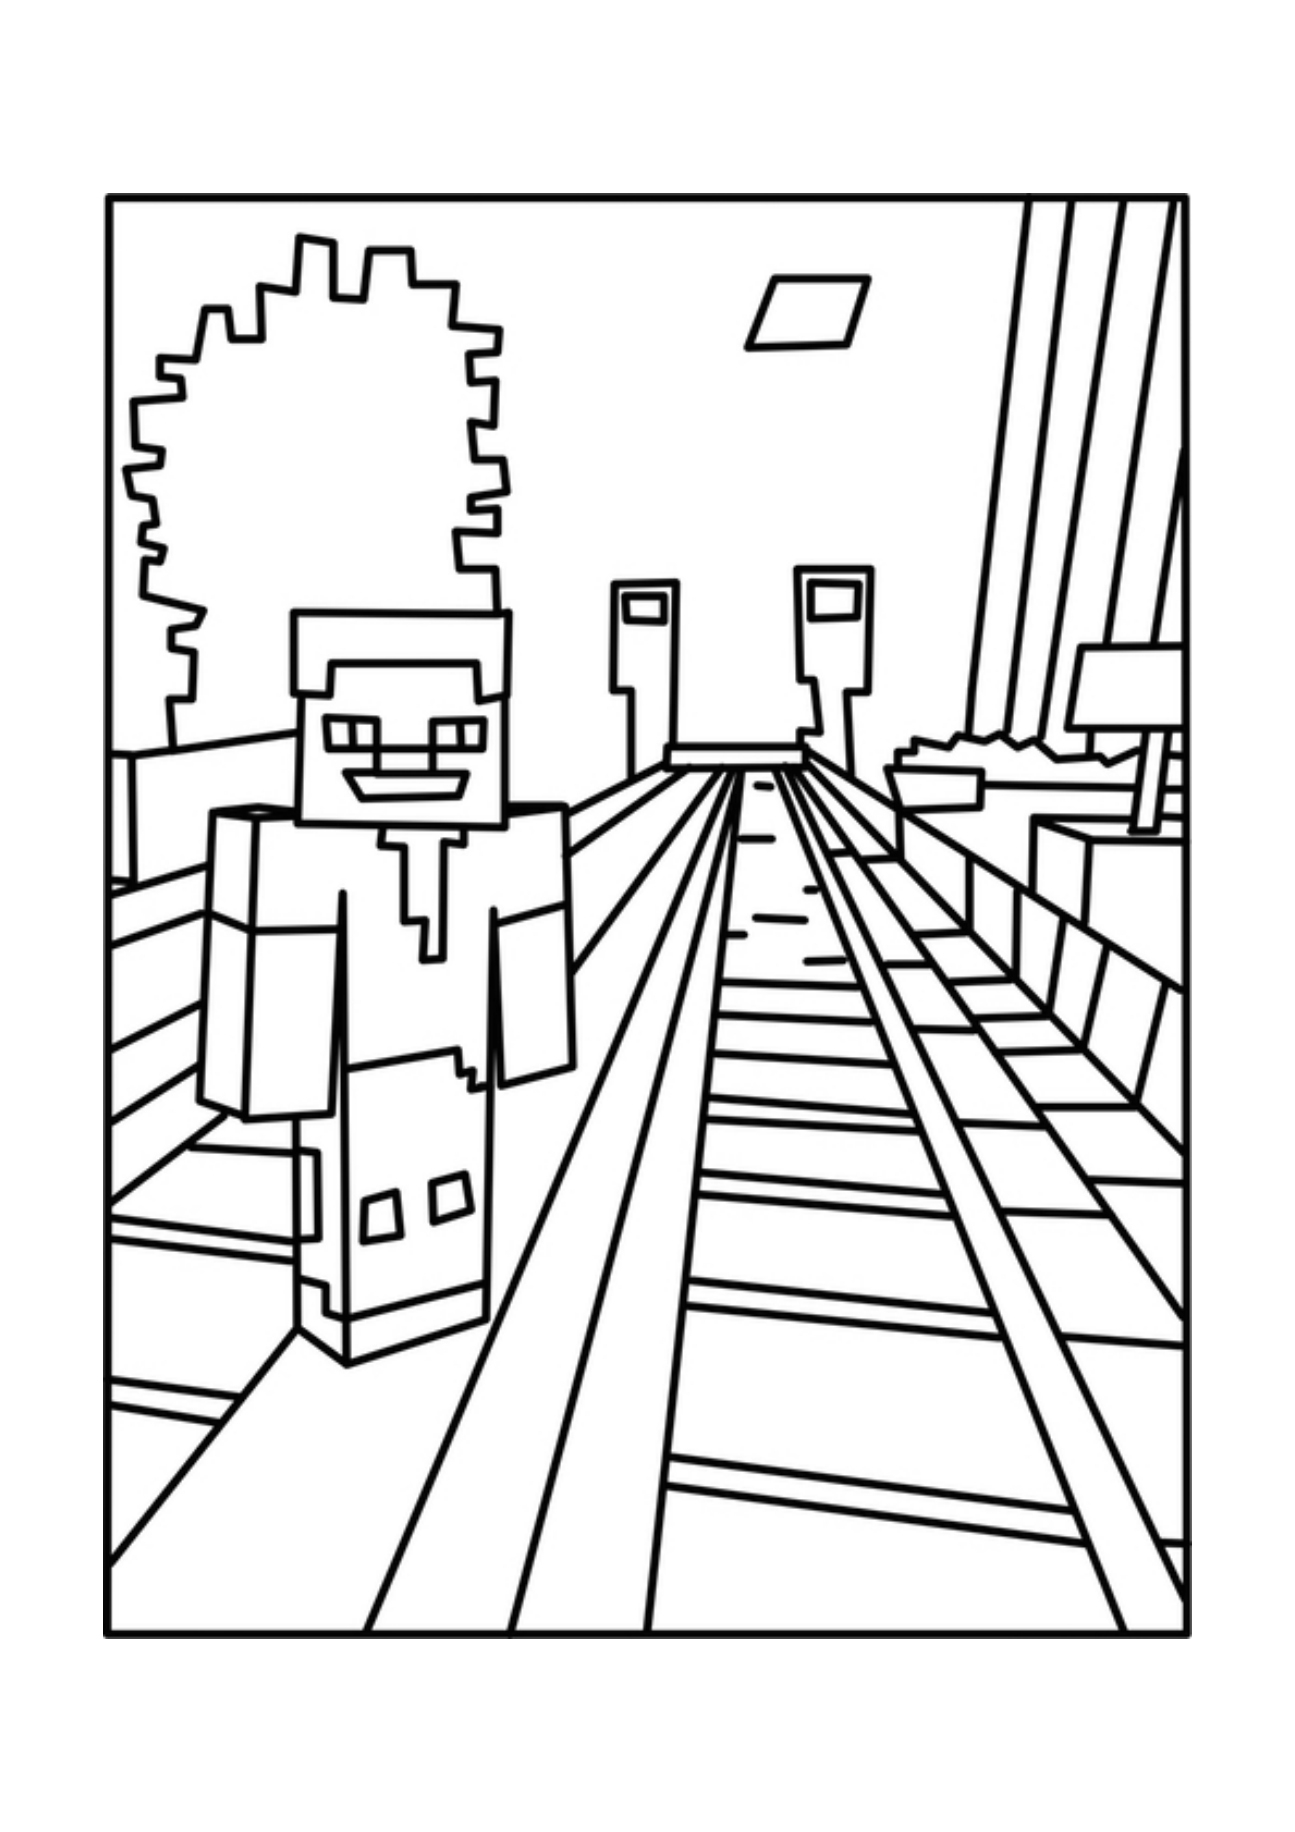 coloring pages minecraft 37 free printable minecraft coloring pages for toddlers pages coloring minecraft